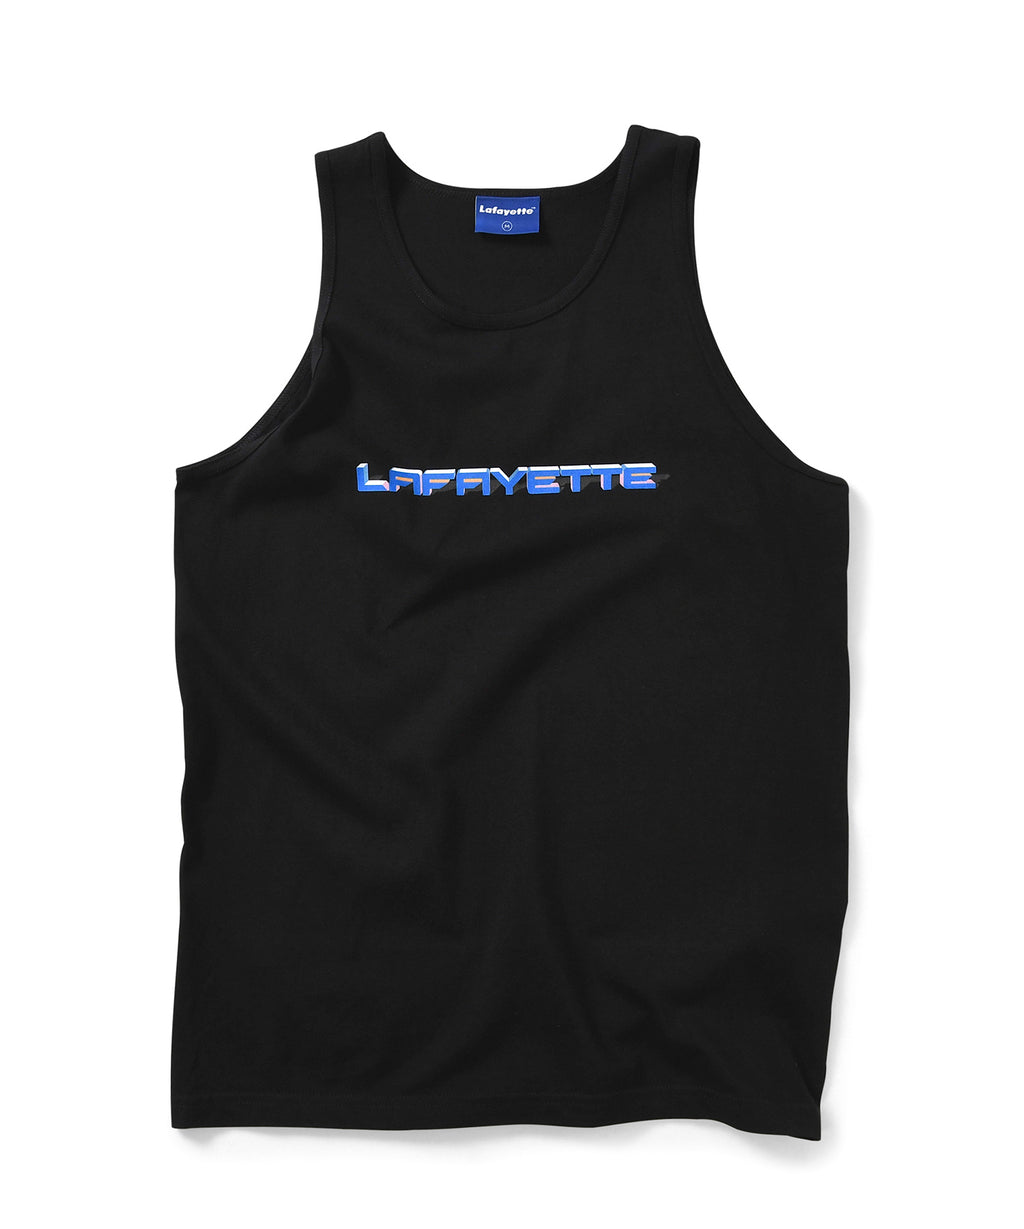 Lafayette 90S POLYGON LOGO TANK TOP LS200138 BLACK